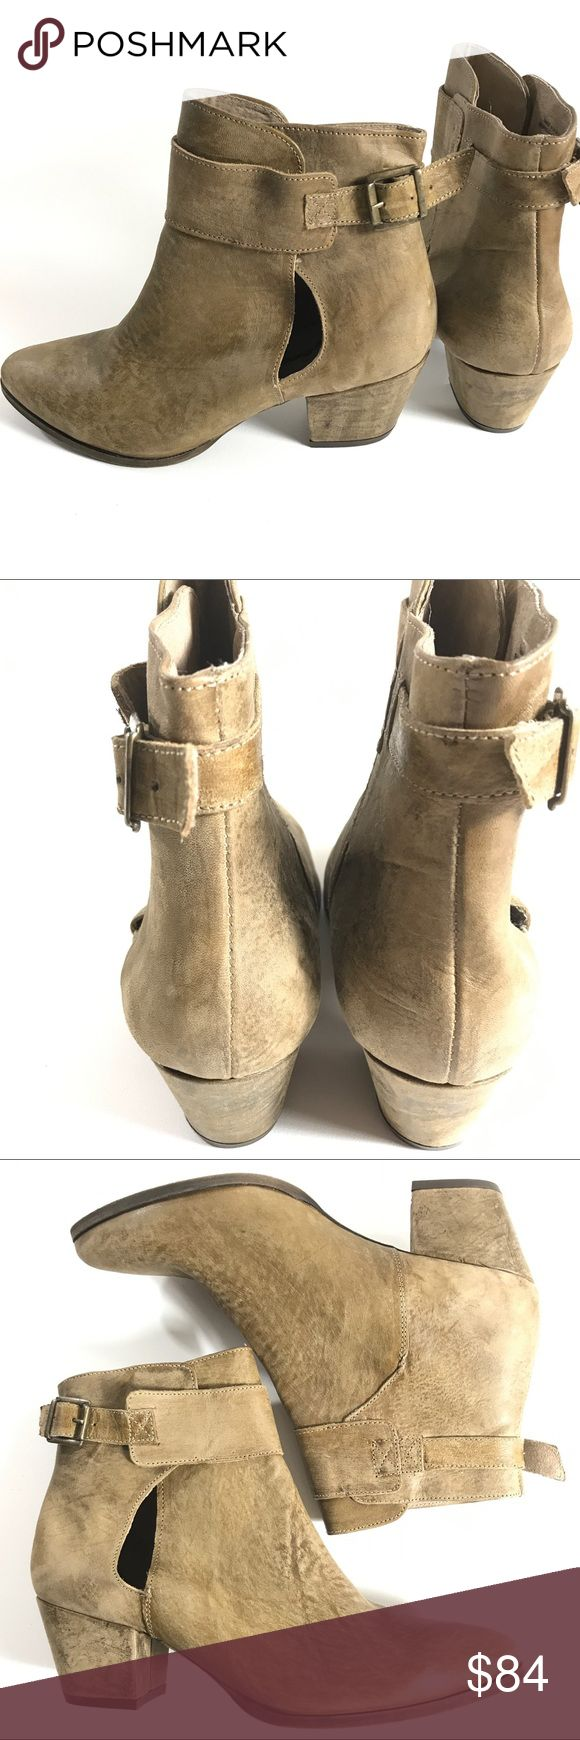 NEW FREE PEOPLE BROWN LEATHER ANKLE BOOTS 9.5 US NEARLY NEW FREE PEOPLE BROWN DISTRESSED LEATHER ANKLE BOOTS 9.5 EUR 40   new without original box Free People Shoes Ankle Boots & Booties